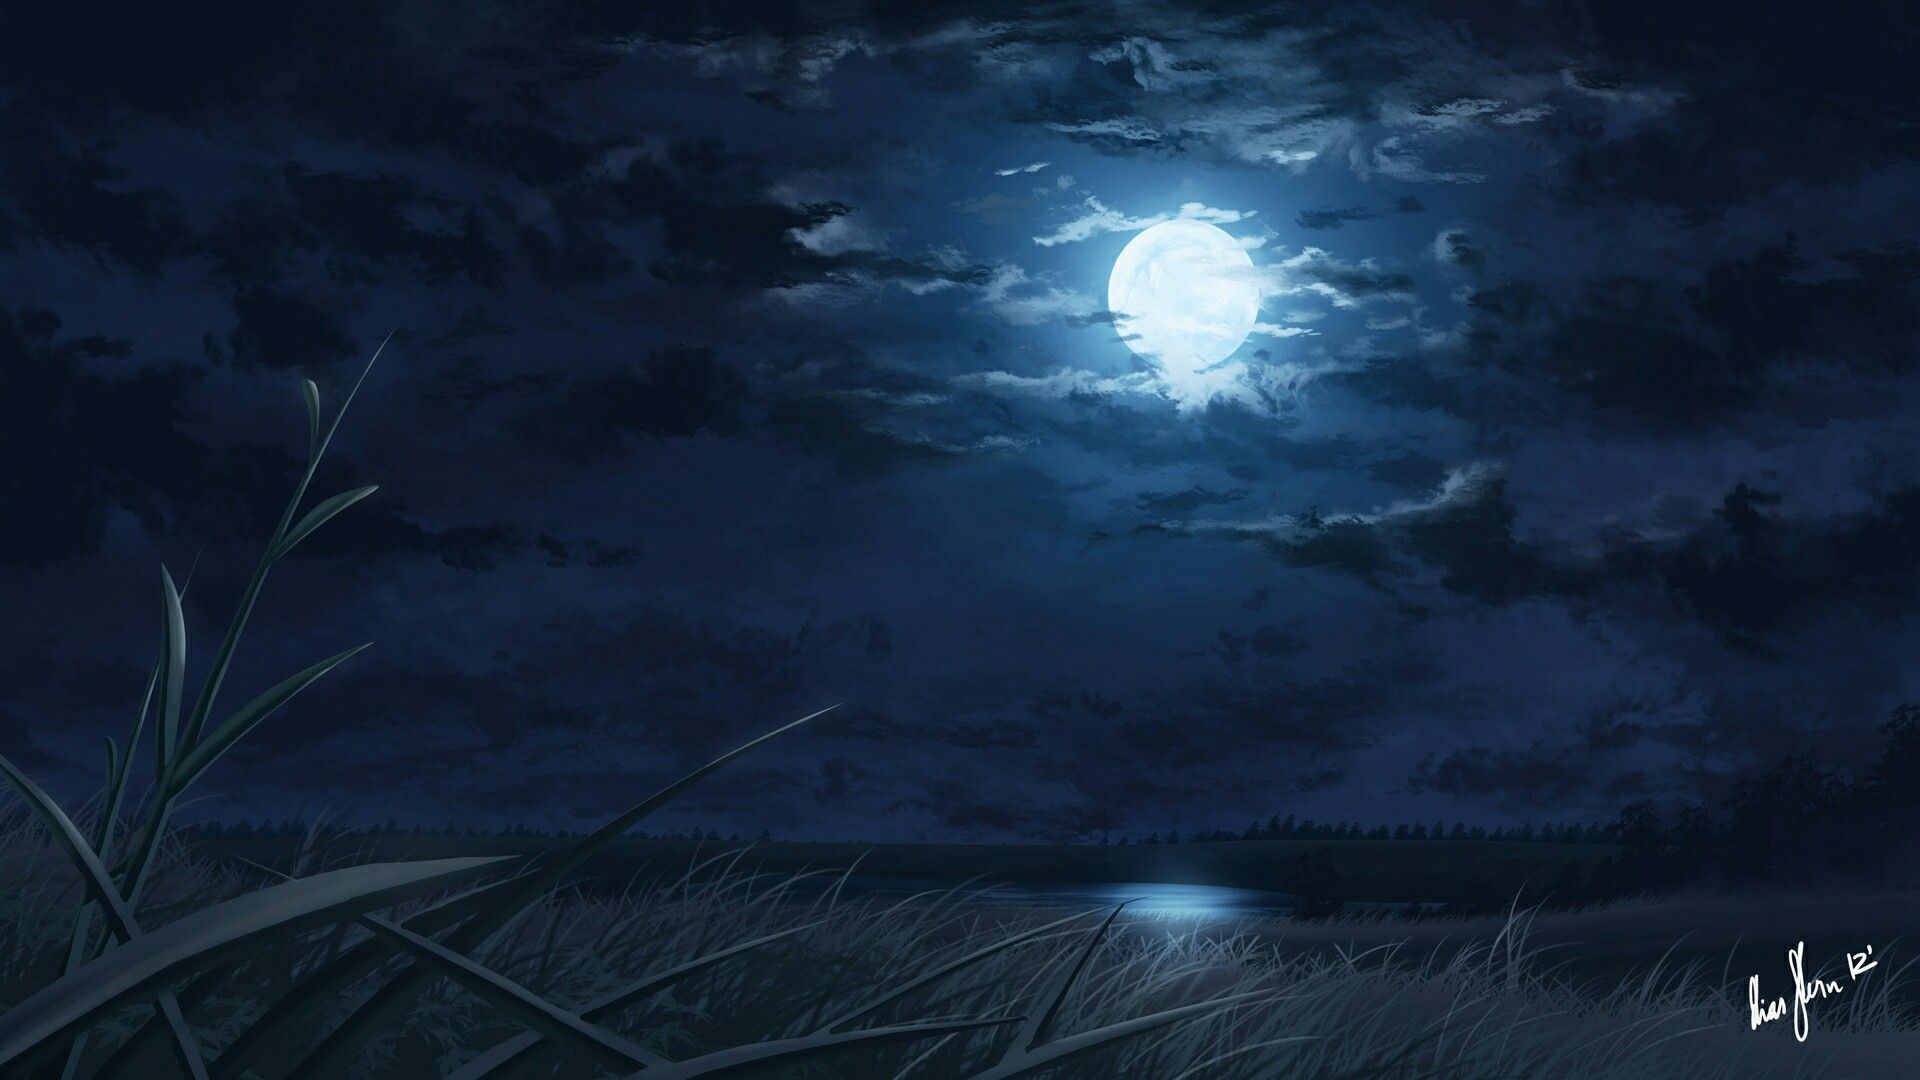 Full Moon Sea Clouds Grass Moon Painting Anime Scenery Night Background